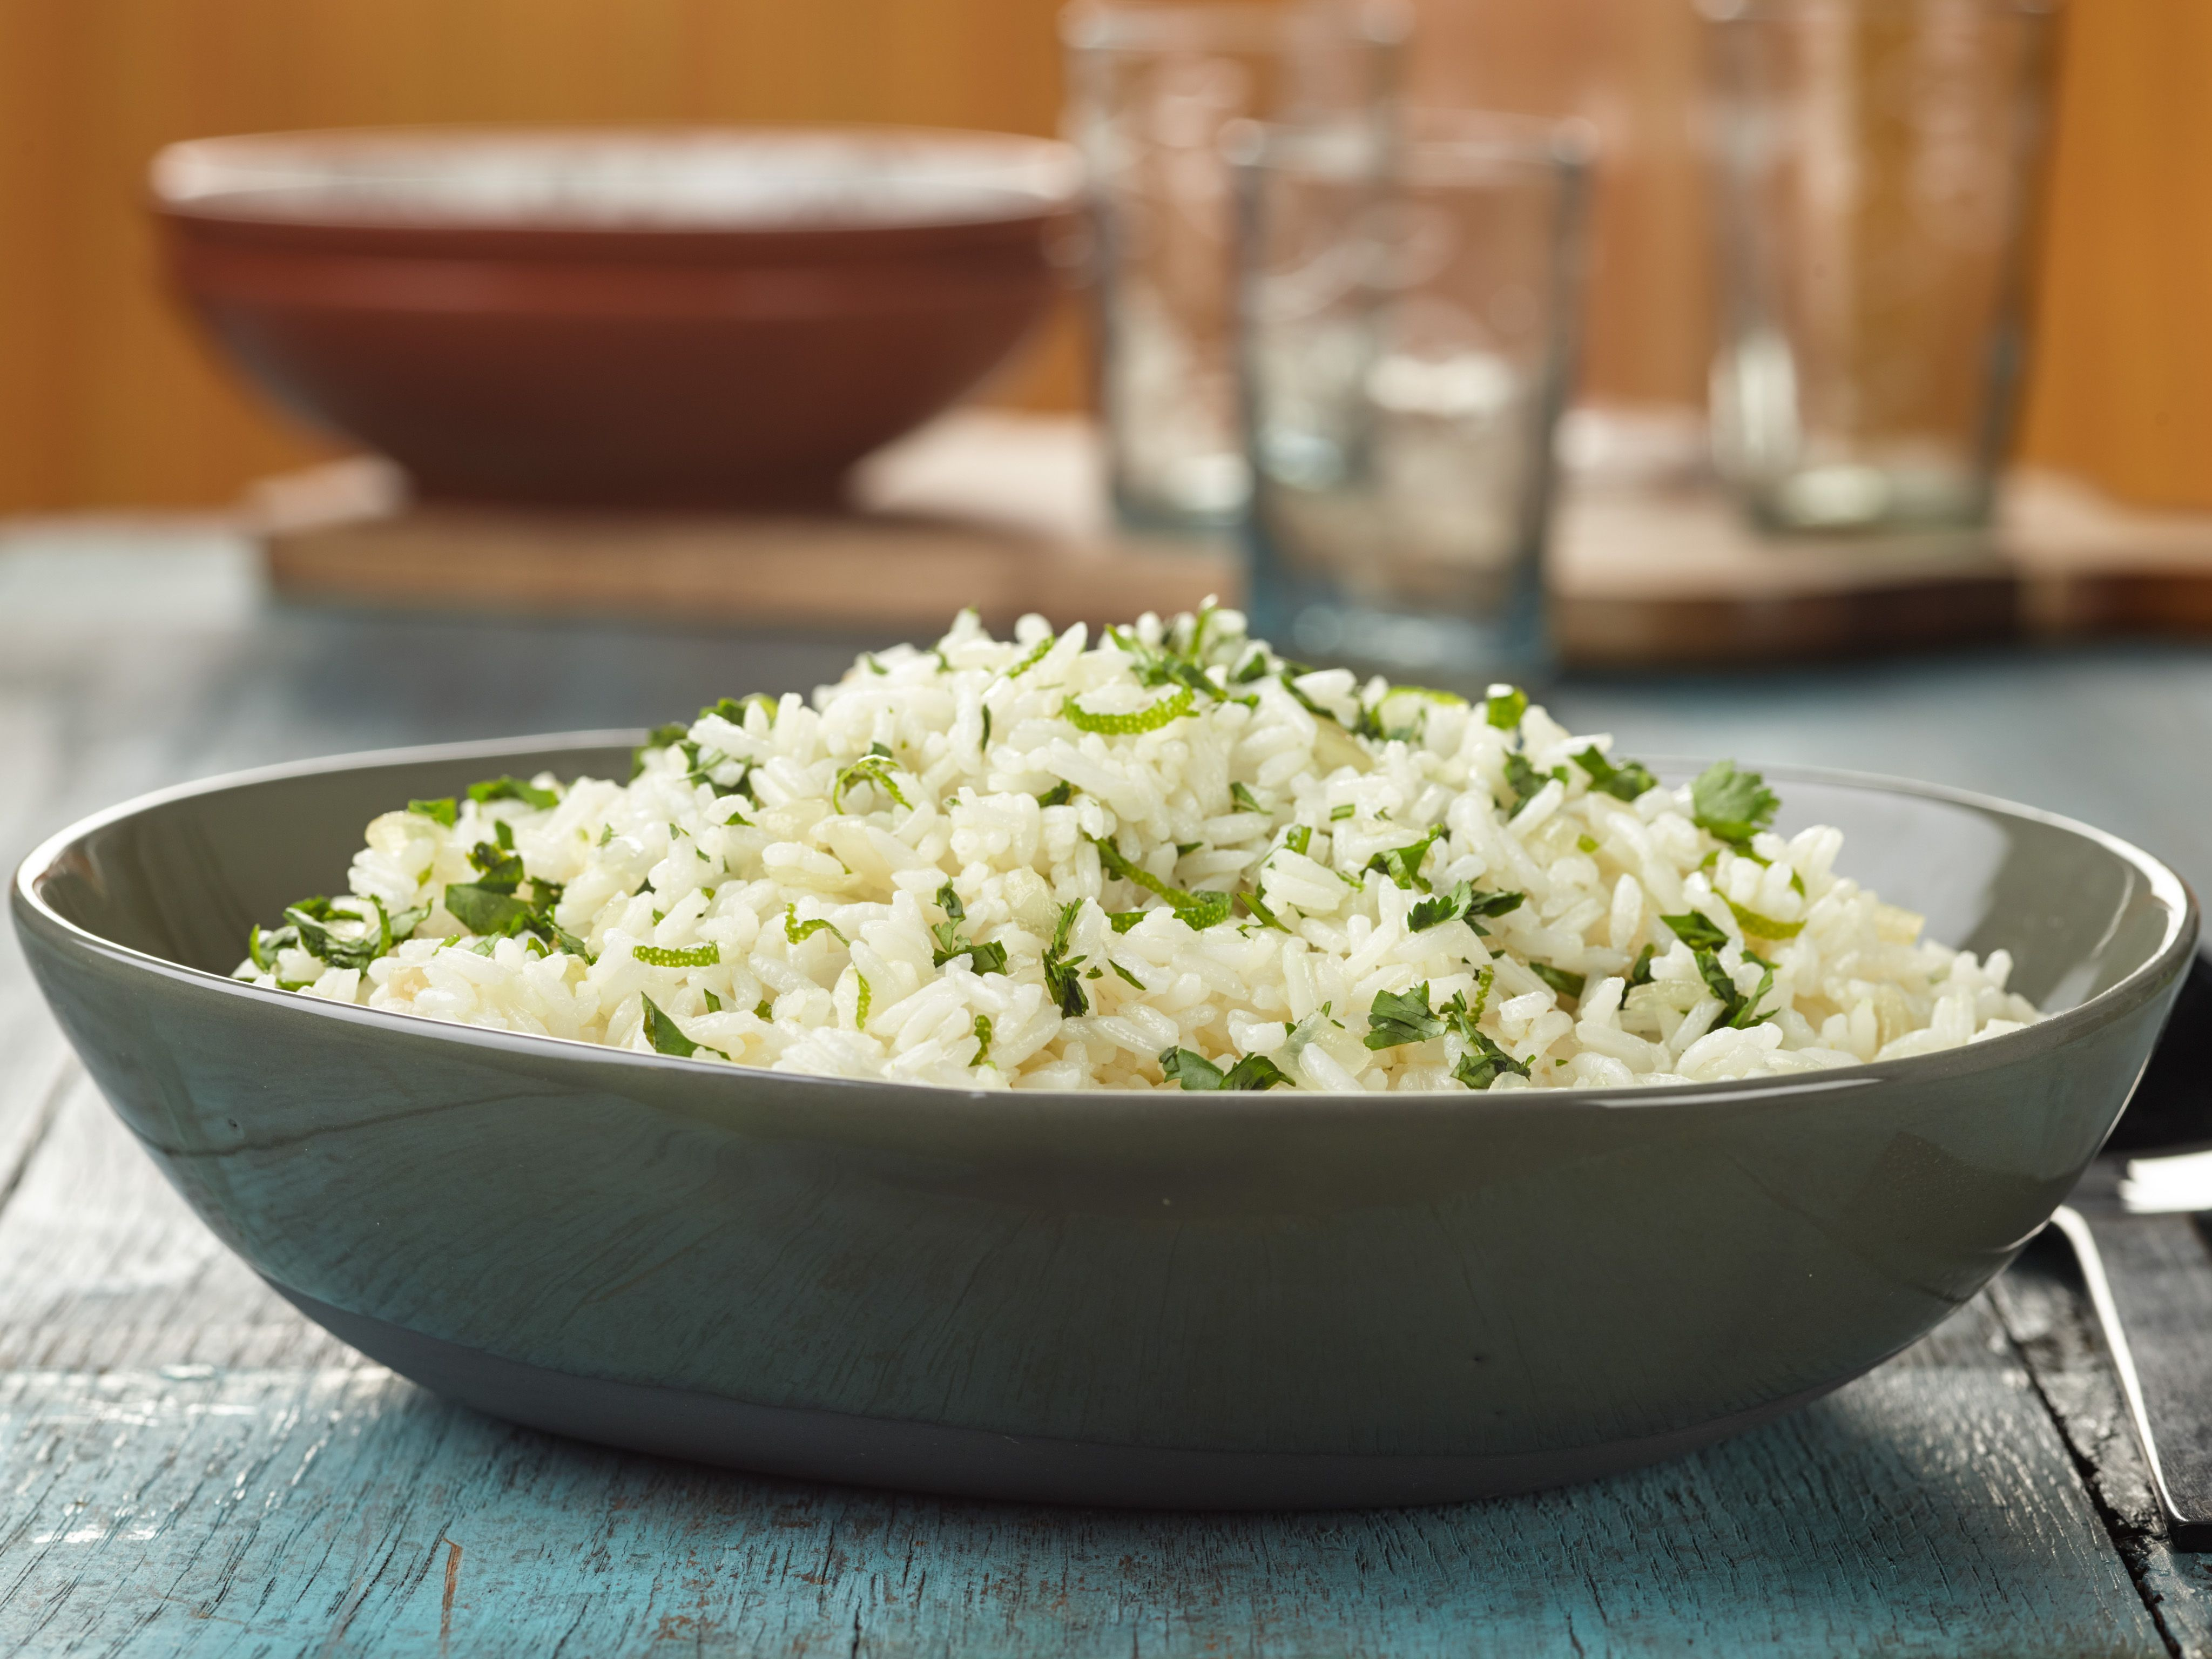 Garlic cilantro lime rice recipe cilantro lime rice lime rice garlic cilantro lime rice recipe ree drummond food network foodnetwork forumfinder Image collections